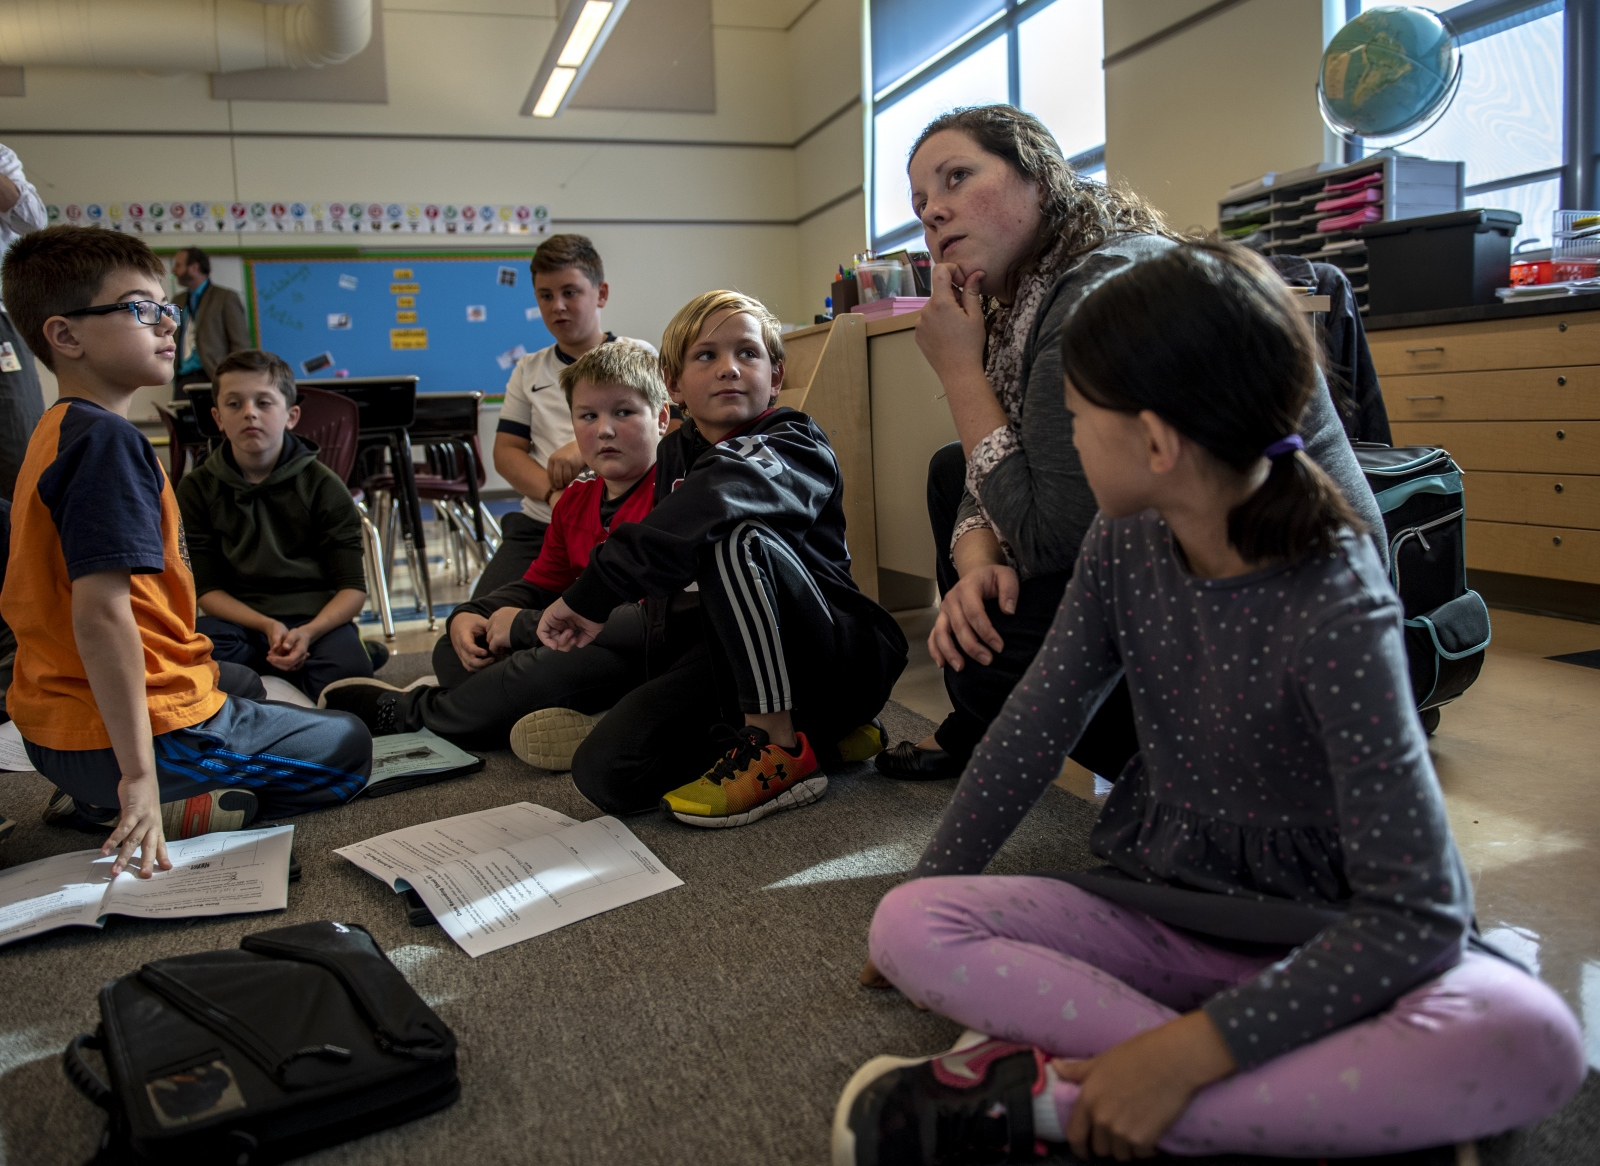 Tara Pollick answers her students' problems in the STEM class on Oct. 17, 2018, at Ferguson Township Elementary School in State College, Pa.